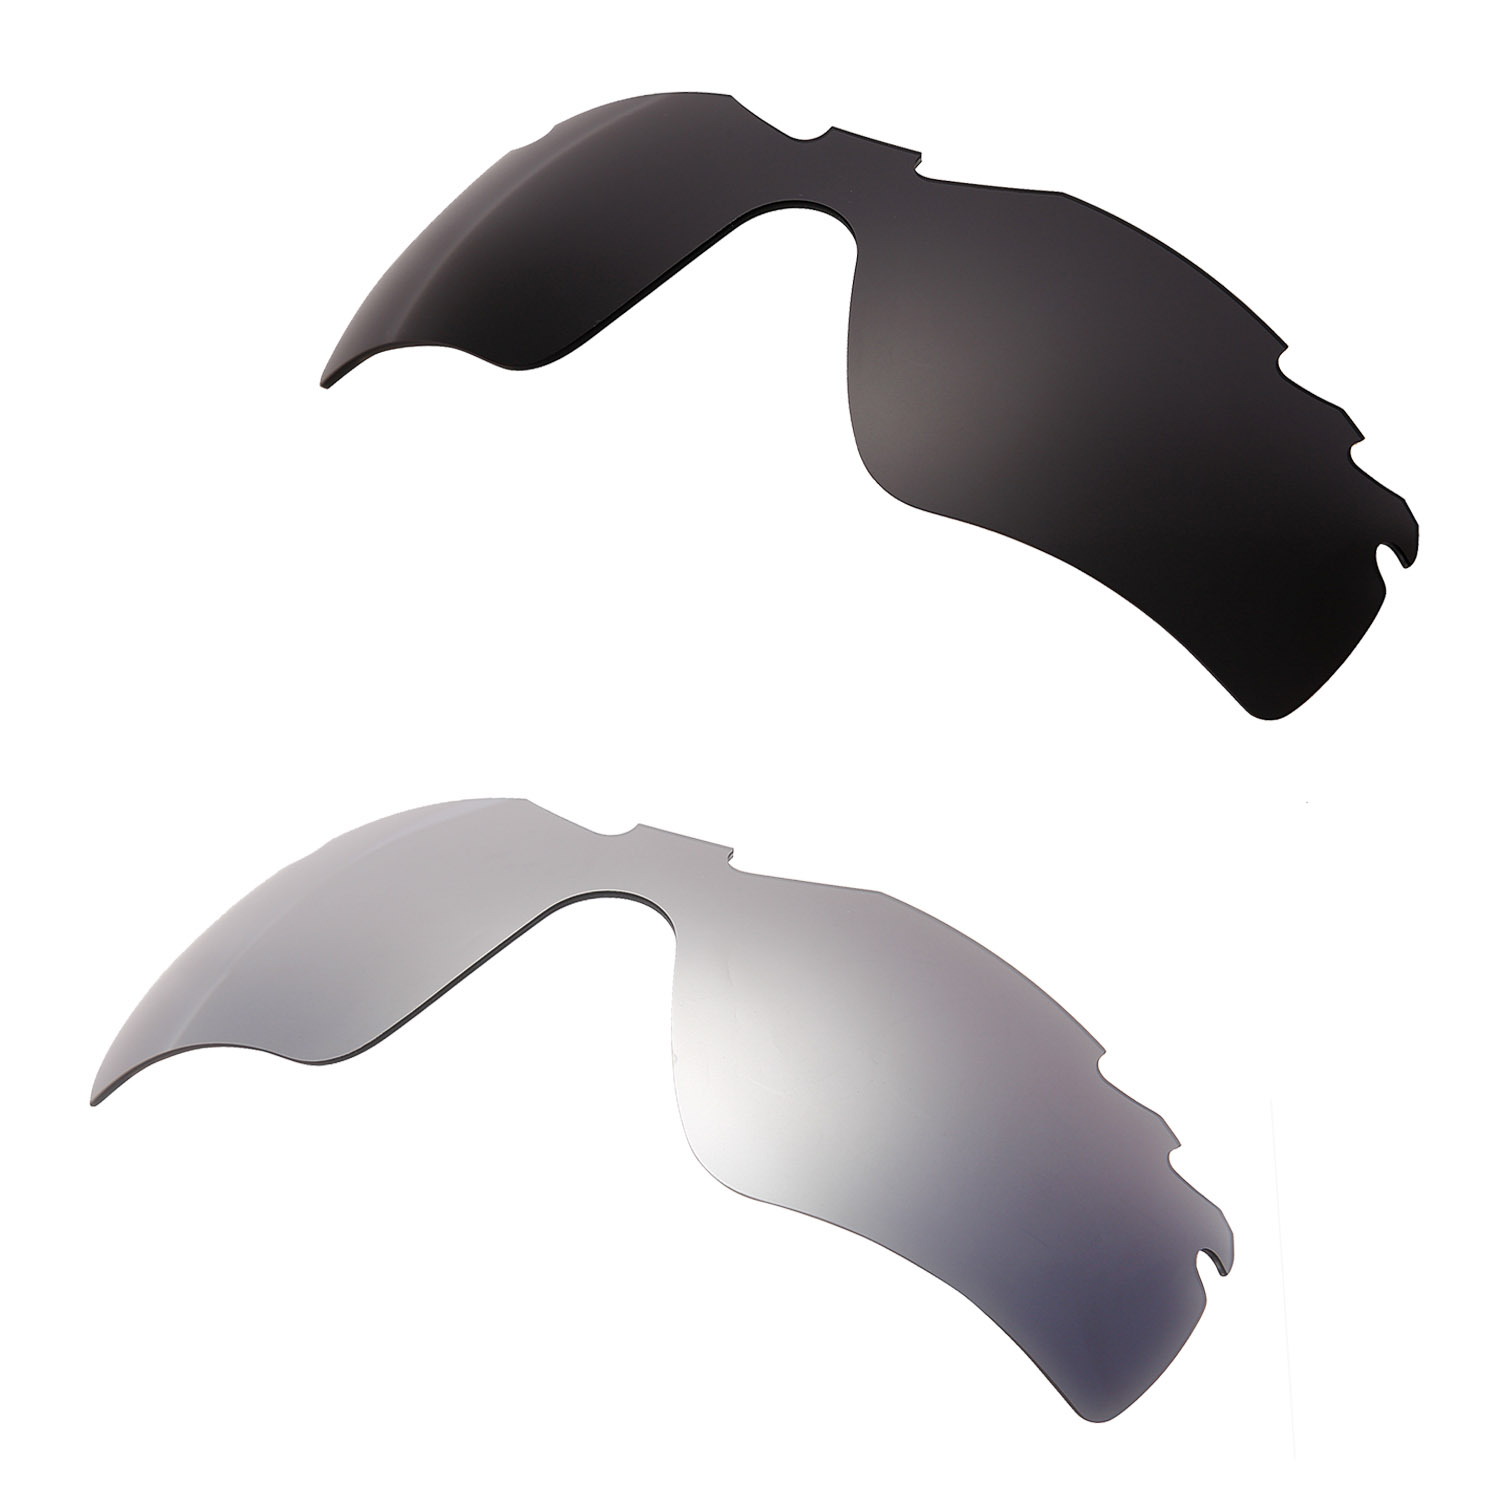 HKUCO Black/Silver 2 Pairs Polarized Replacement Lenses For Radar Path-Vented Sunglasses Increase Clarity